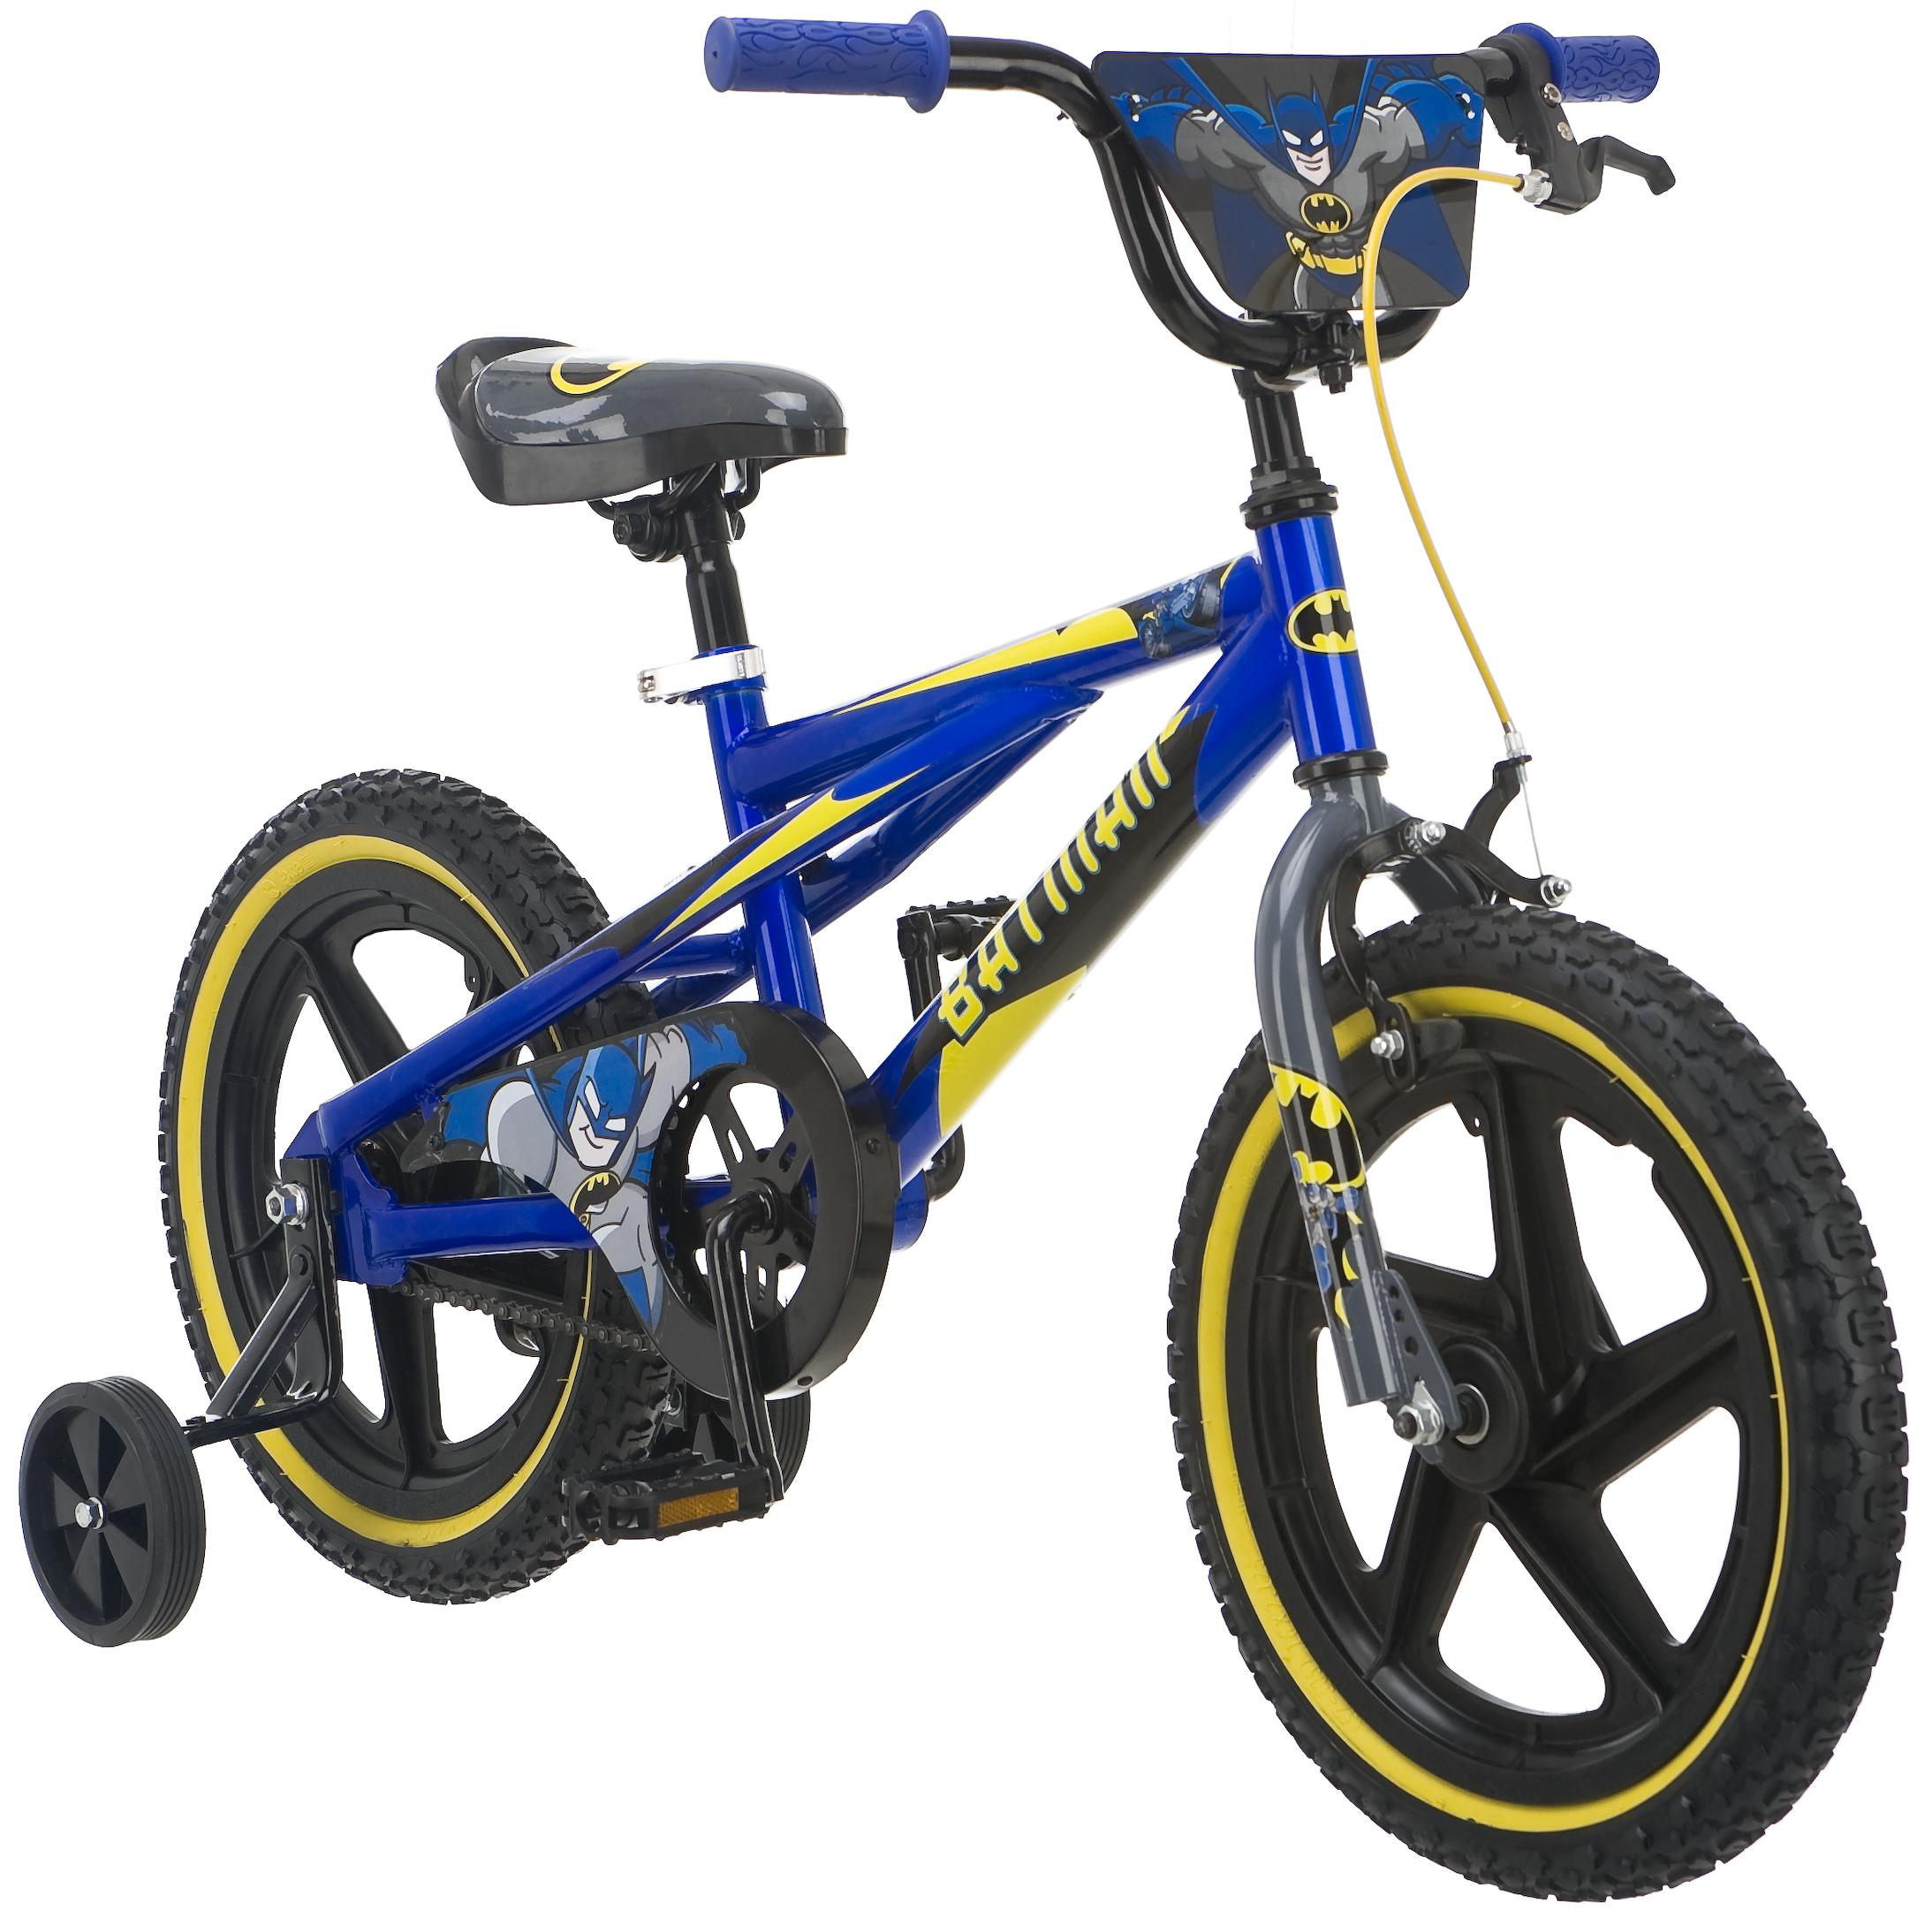 John Deere 16 inch Bicycle The ultimate bicycle! Officially licensed by one of the best brands in the world of farming and tractors, this 16 inch John Deere single speed bicycle features ultra tough steel construction, pneumatic tires, and tons of other cool features!